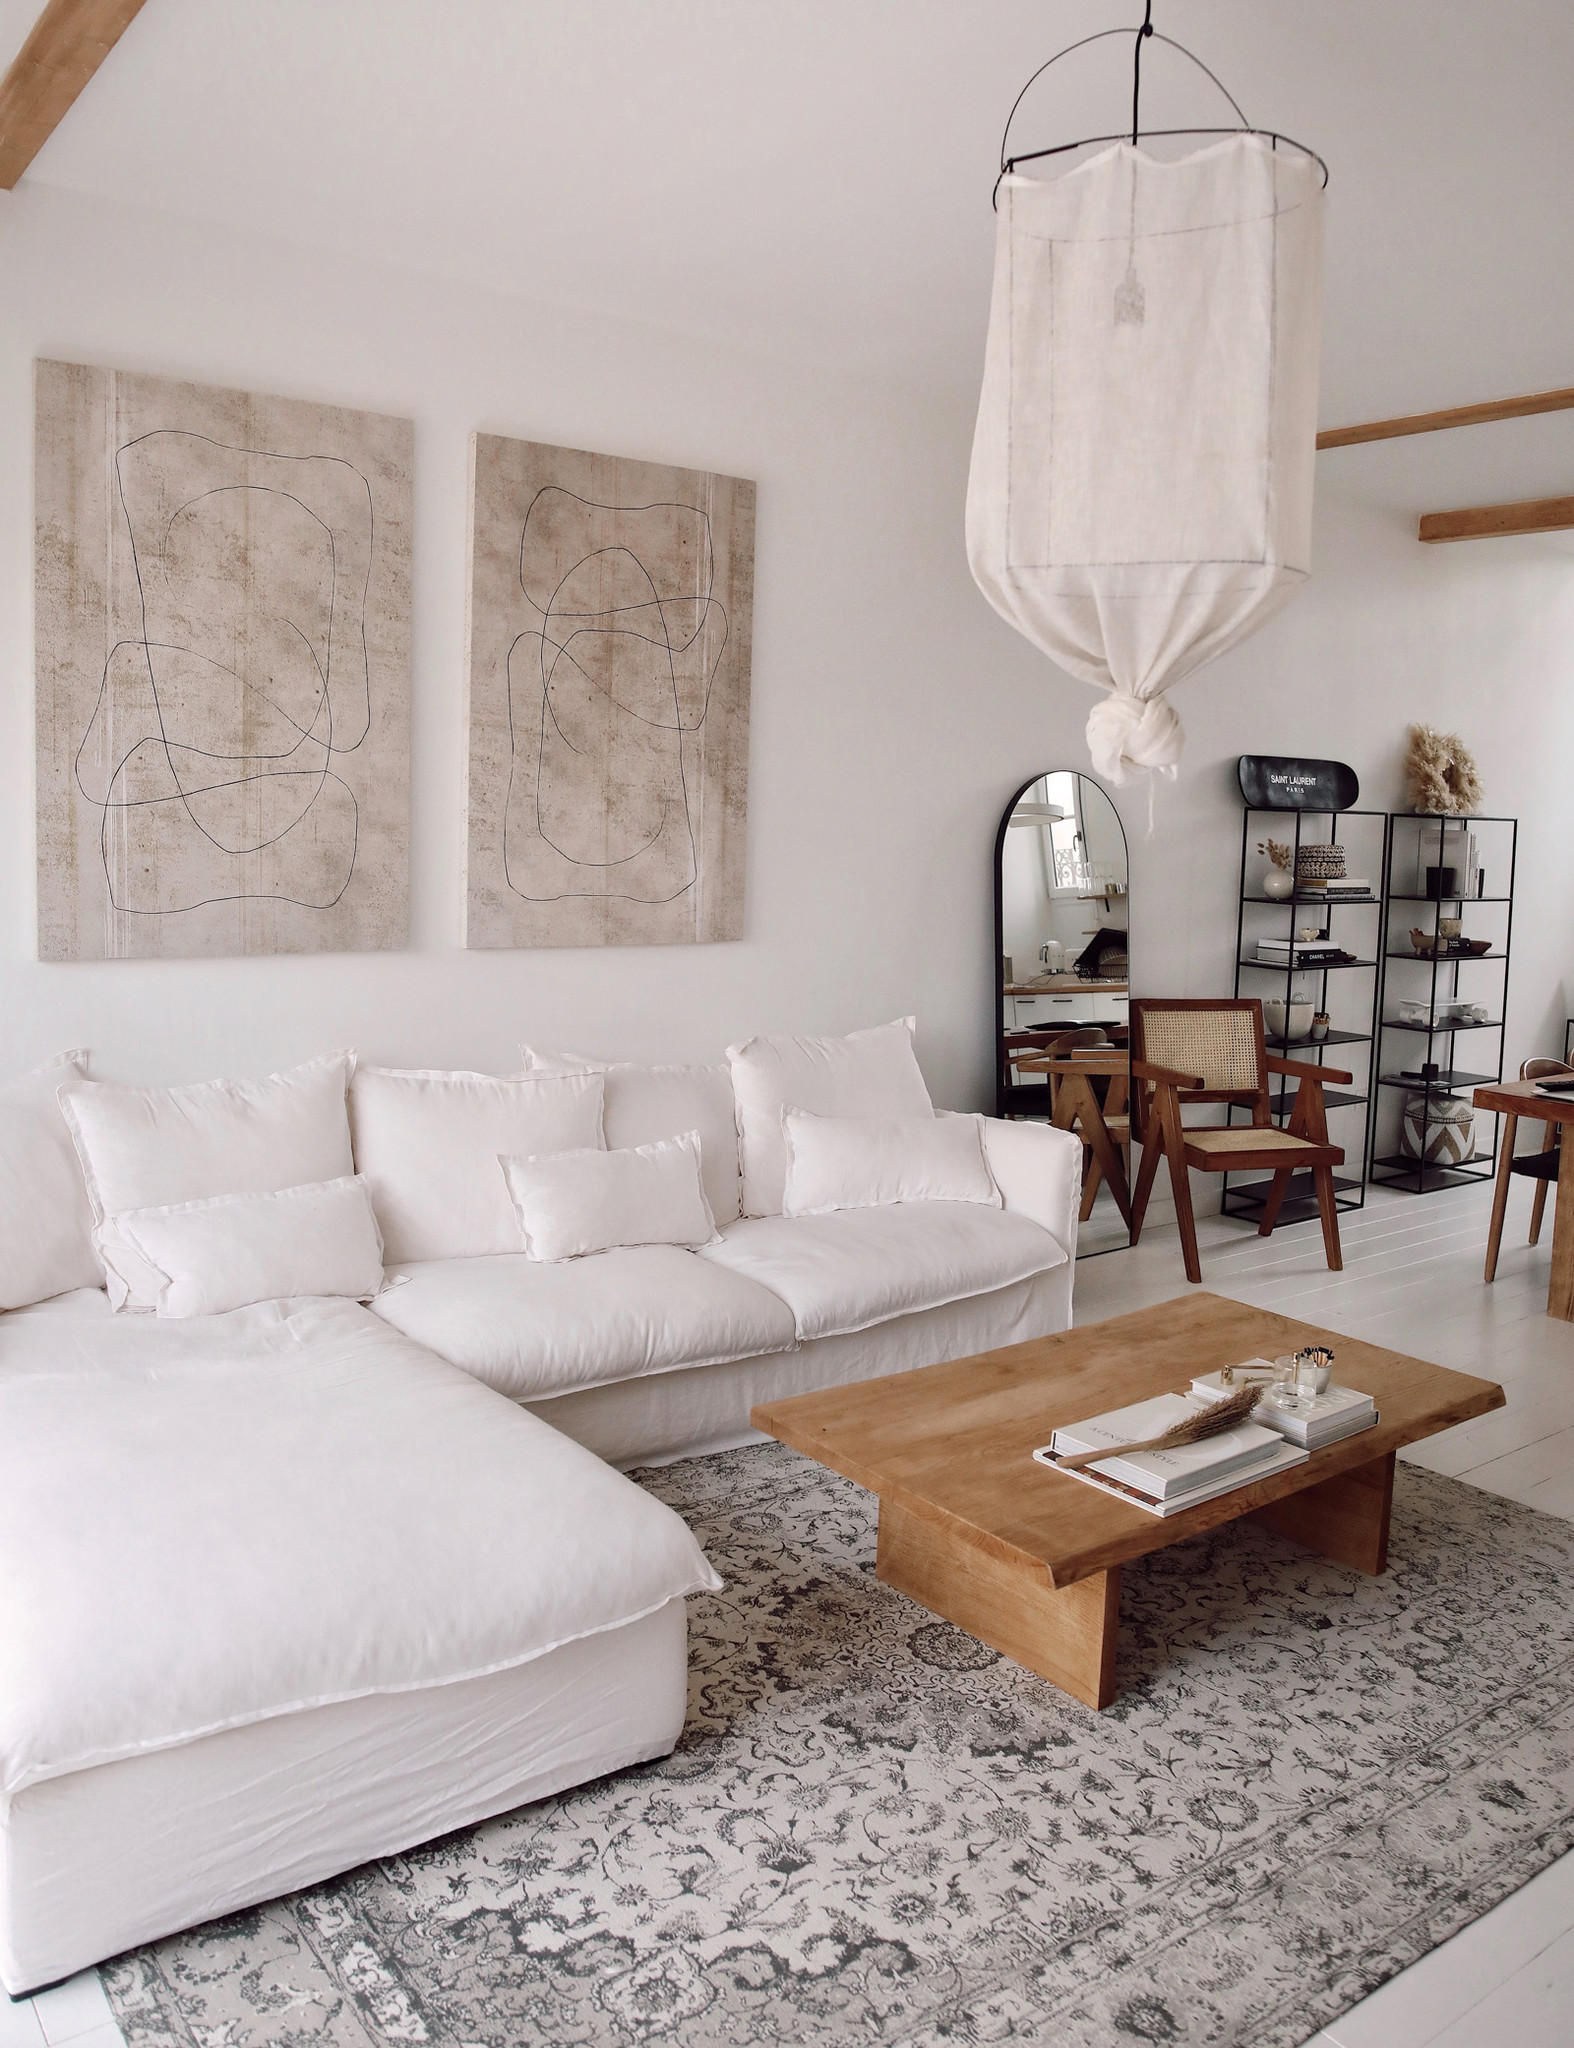 Gorgeous minimalist styling with californian vibes